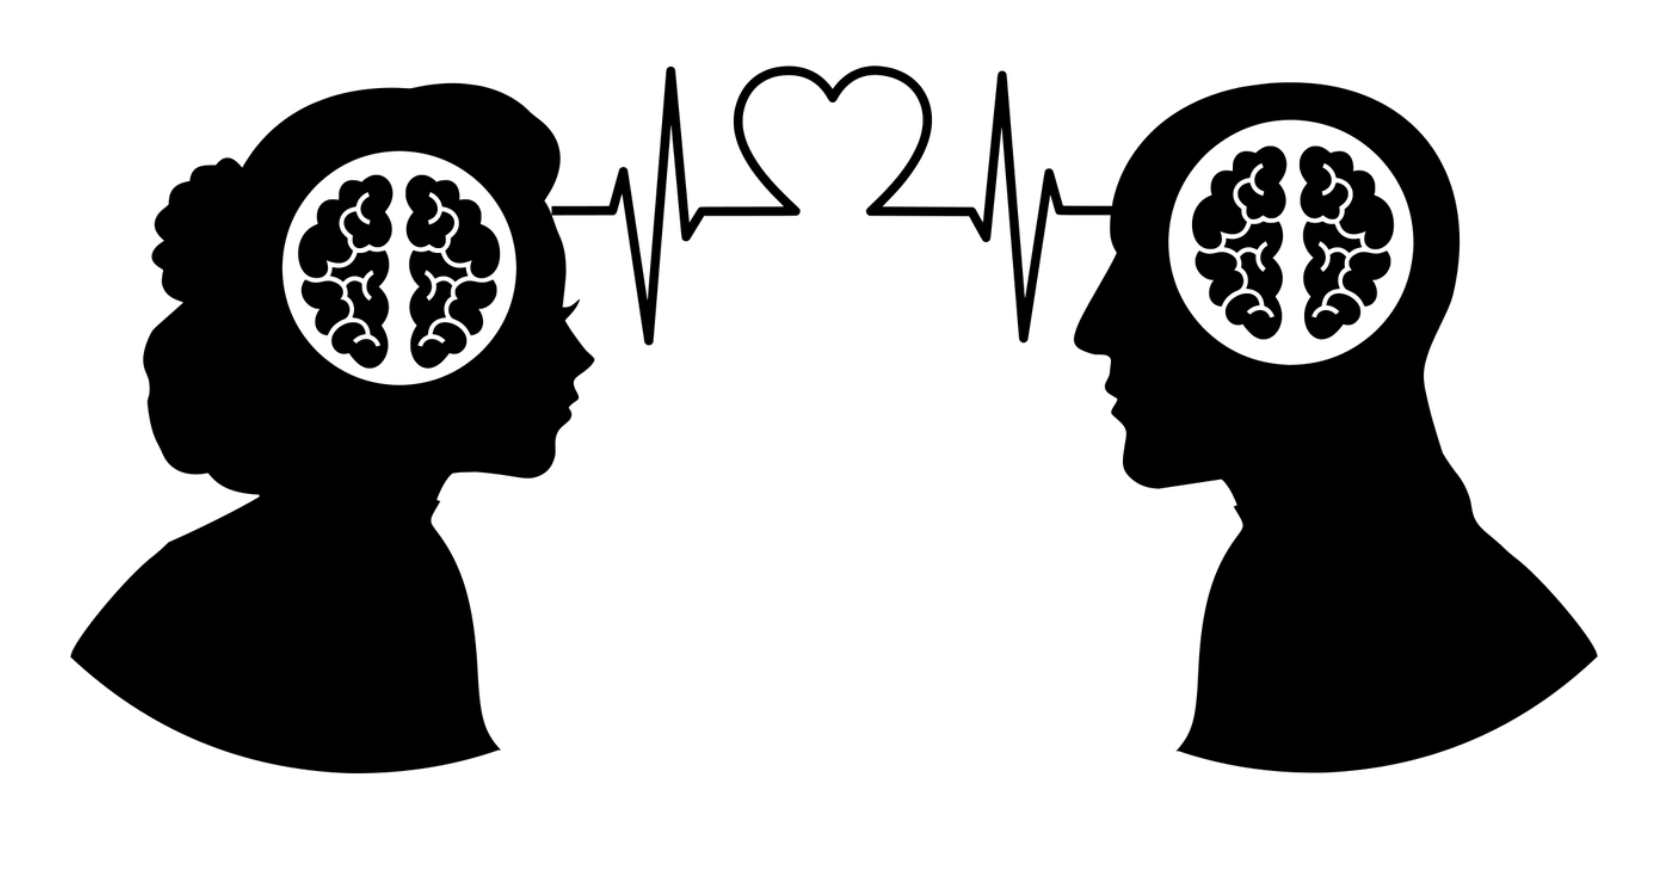 Bringing Neuroscience and Sociology into Dialogue on Emotions to Better Understand Human Behavior